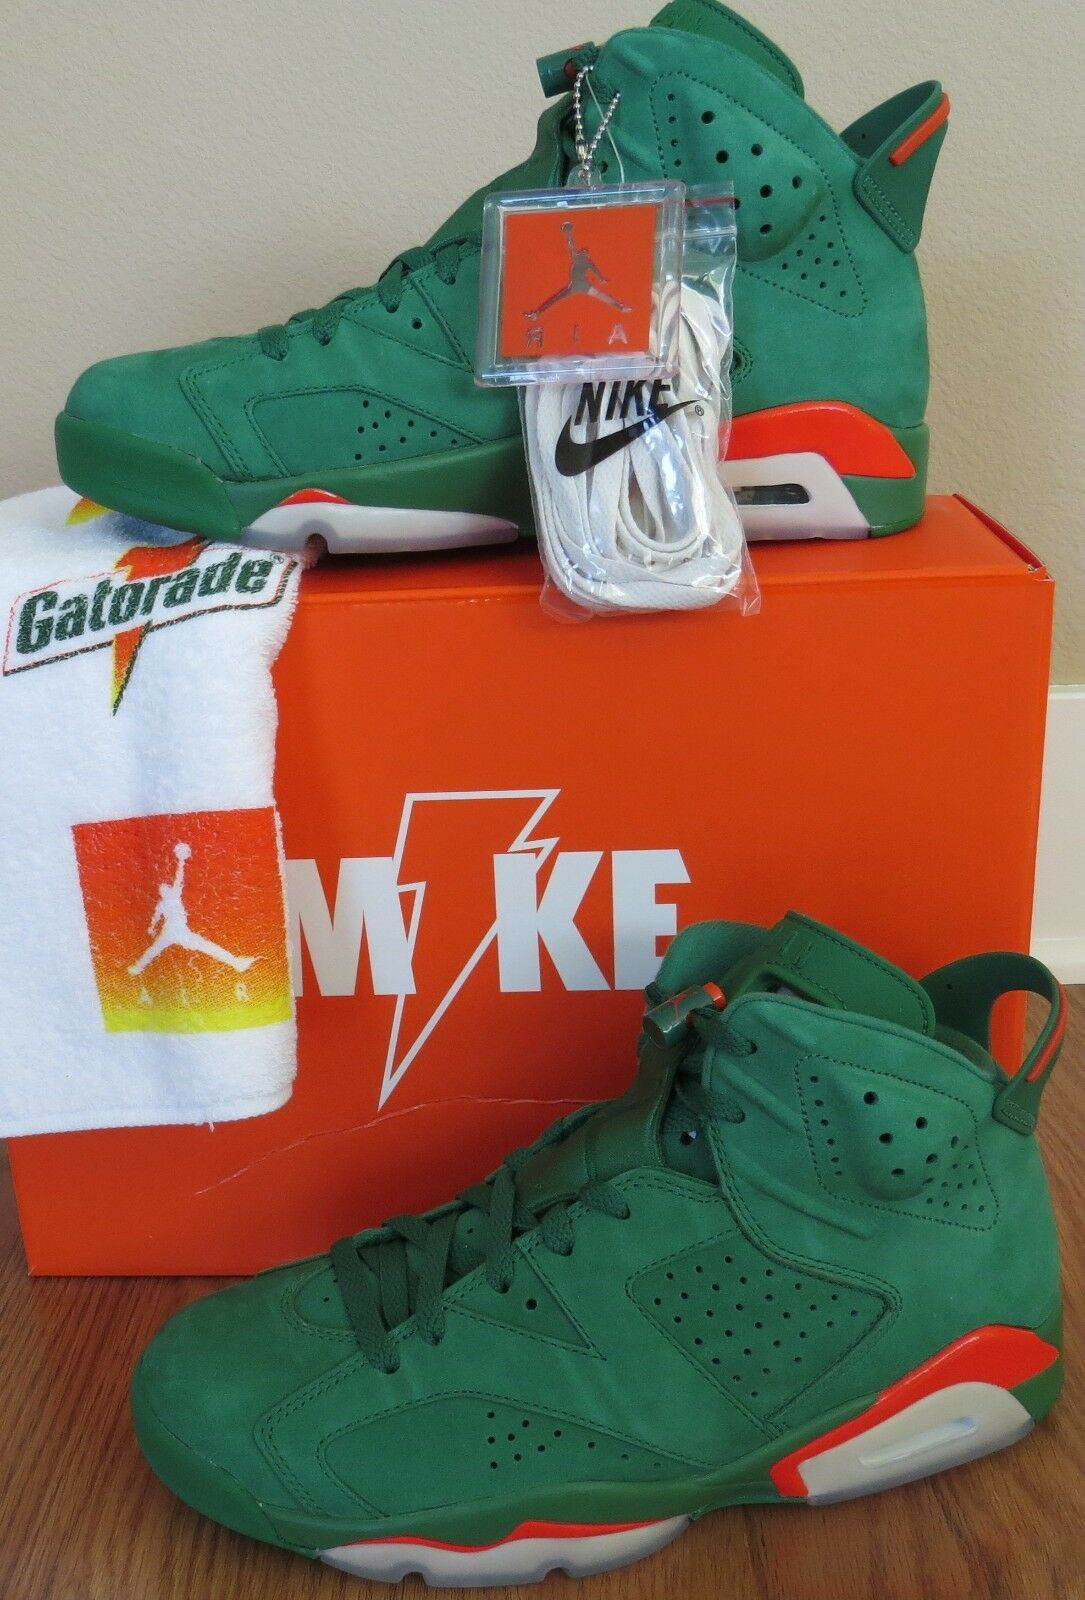 Nike AIR JORDAN 6 VI RETRO  AJ5986-335 Pine Green Gatorade x SZ  9.5 New W Rec.